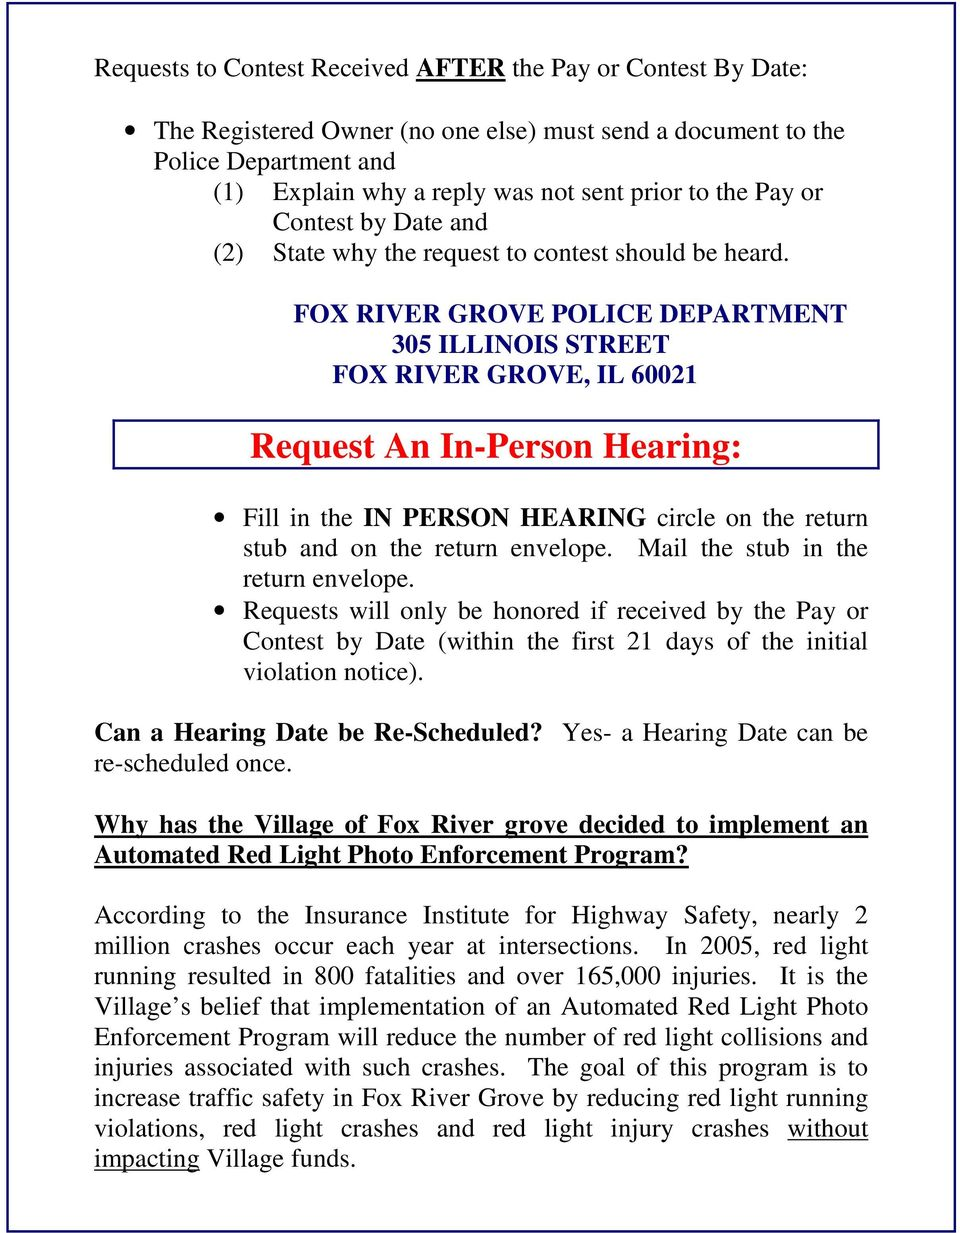 FOX RIVER GROVE POLICE DEPARTMENT 305 ILLINOIS STREET FOX RIVER GROVE, IL 60021 Request An In-Person Hearing: Fill in the IN PERSON HEARING circle on the return stub and on the return envelope.